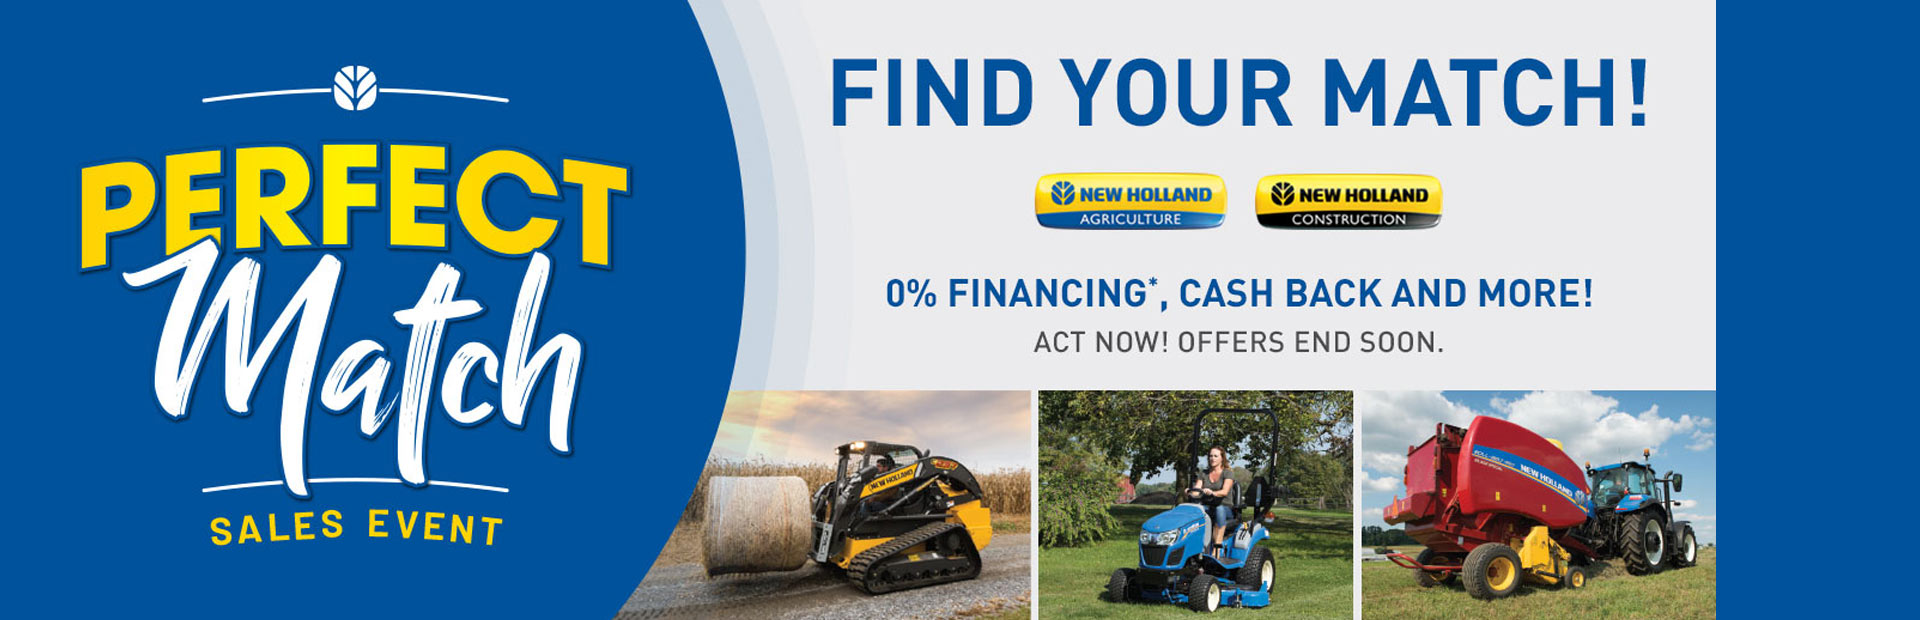 New Holland Agriculture: Perfect Match Sales Event